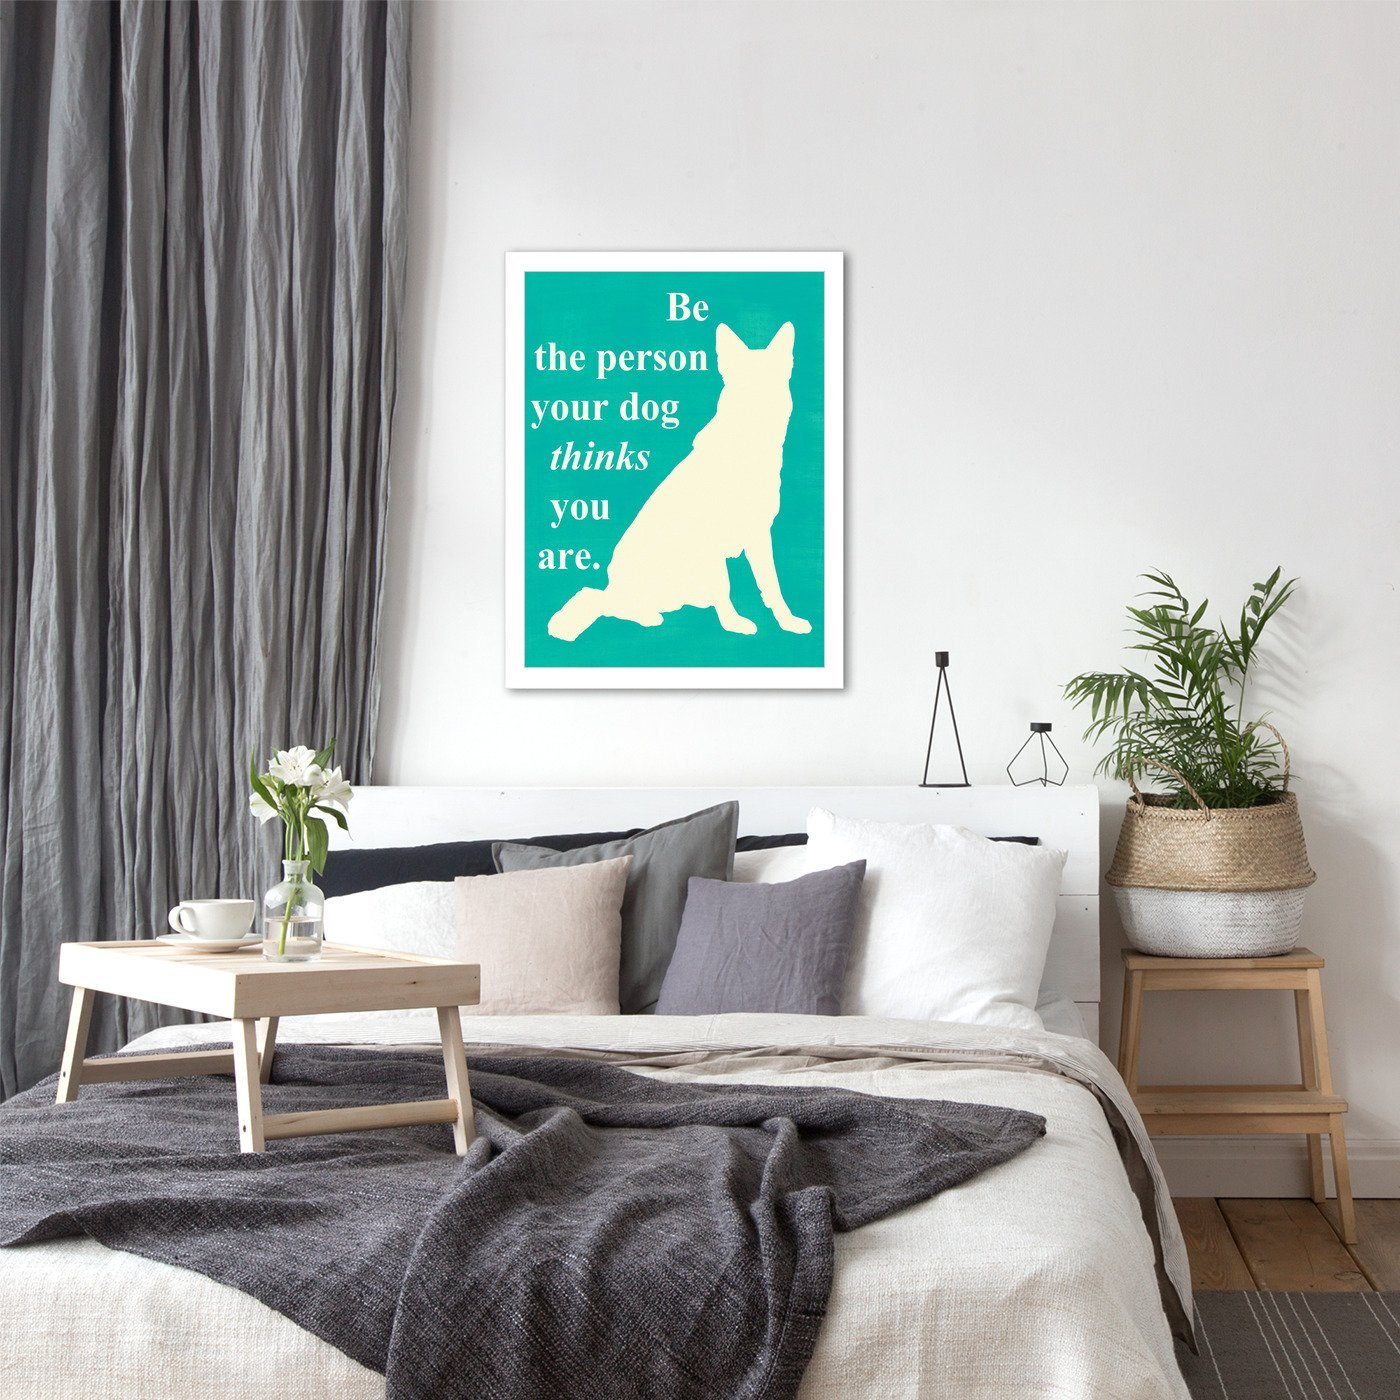 Be the Person Your Dog Thinks You Are by Vision Studio by World Art Group - White Framed Print - Wall Art - Americanflat